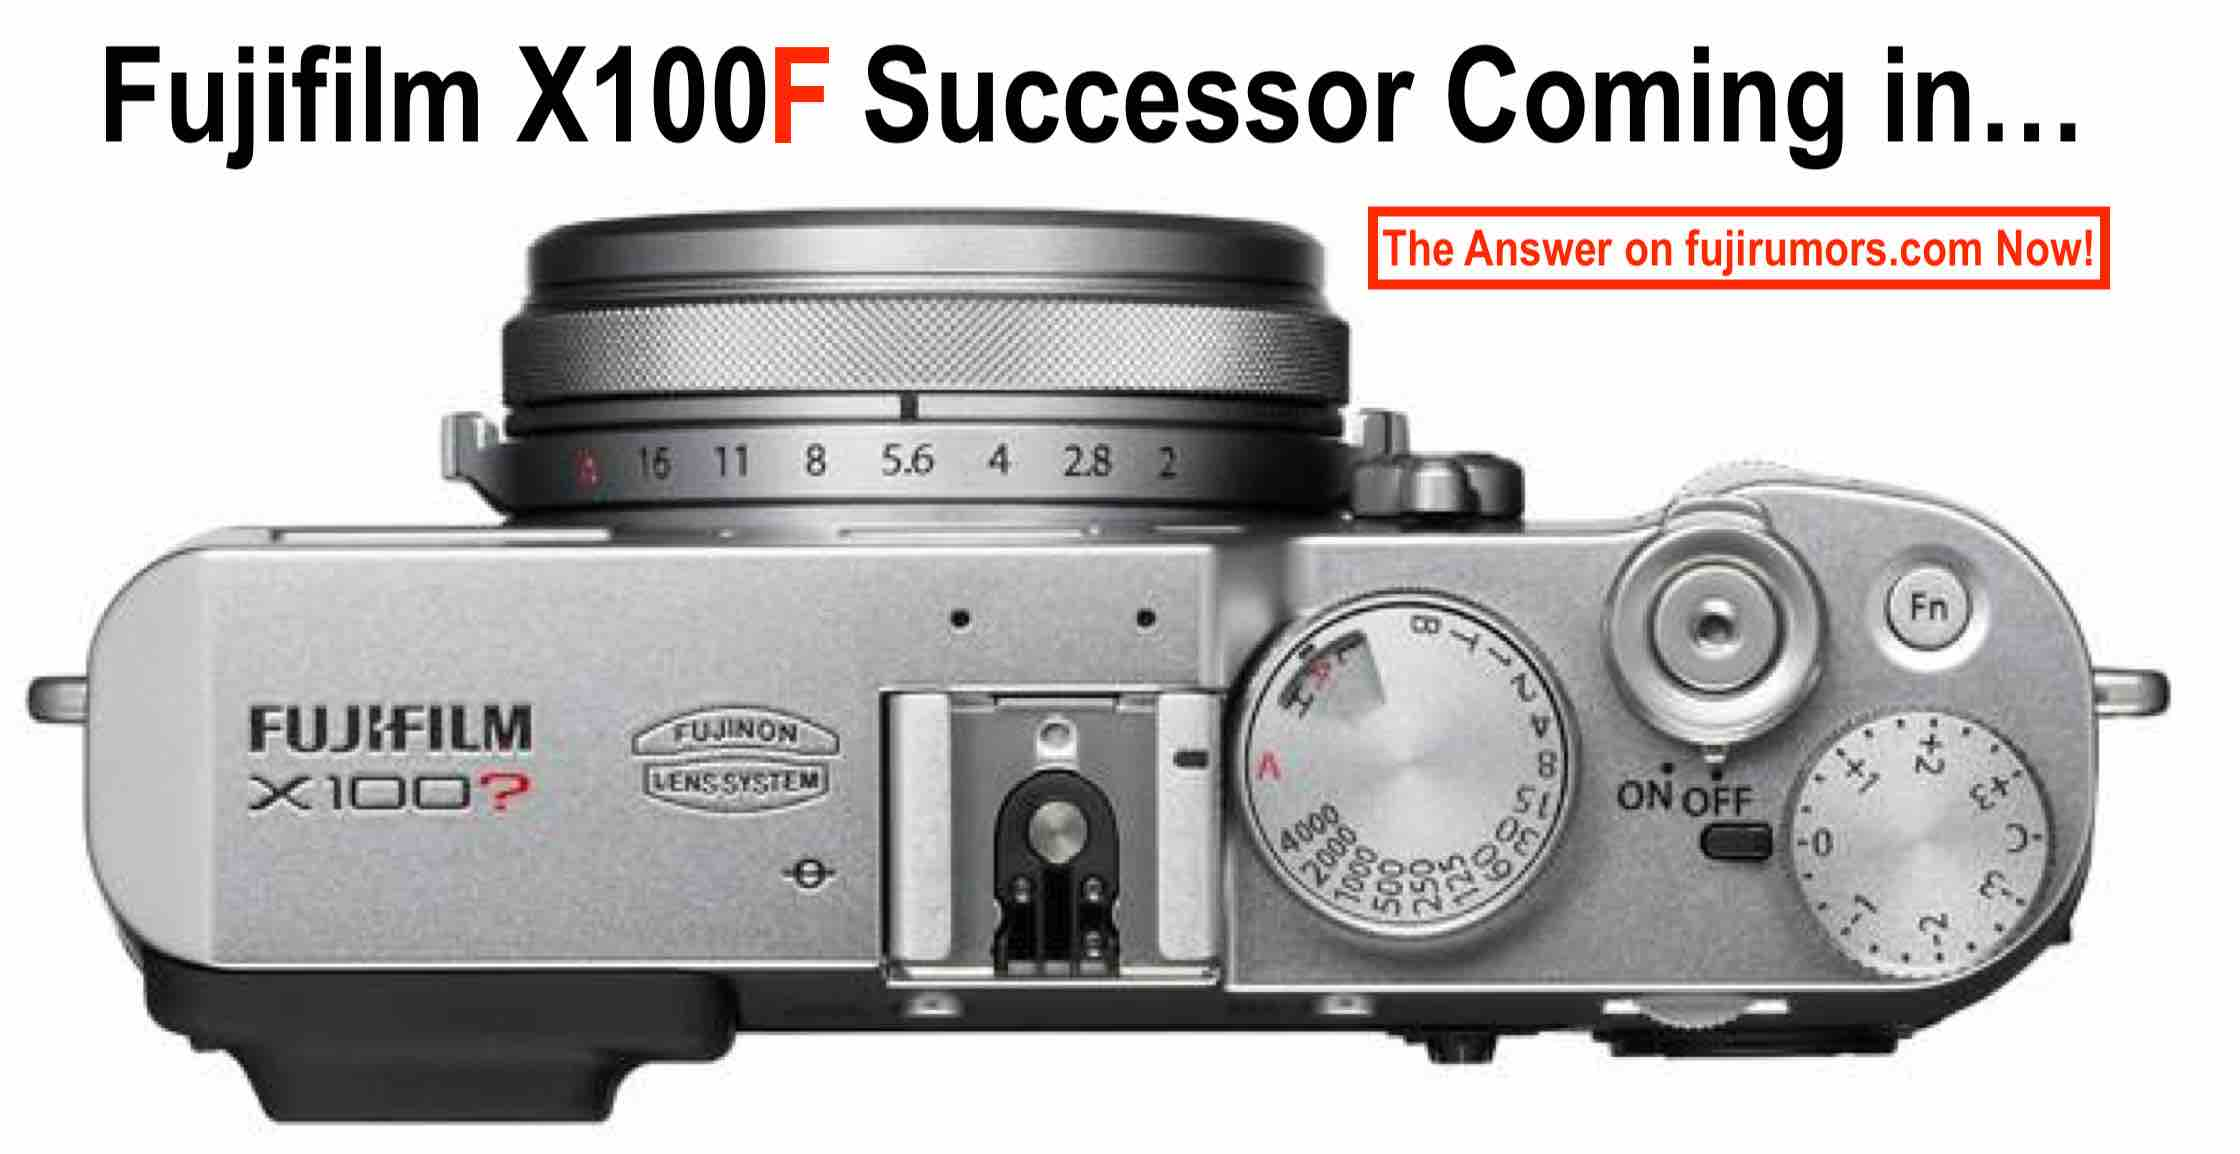 Fujifilm X100V/X200 Coming in    The Answer in This FujiRumors